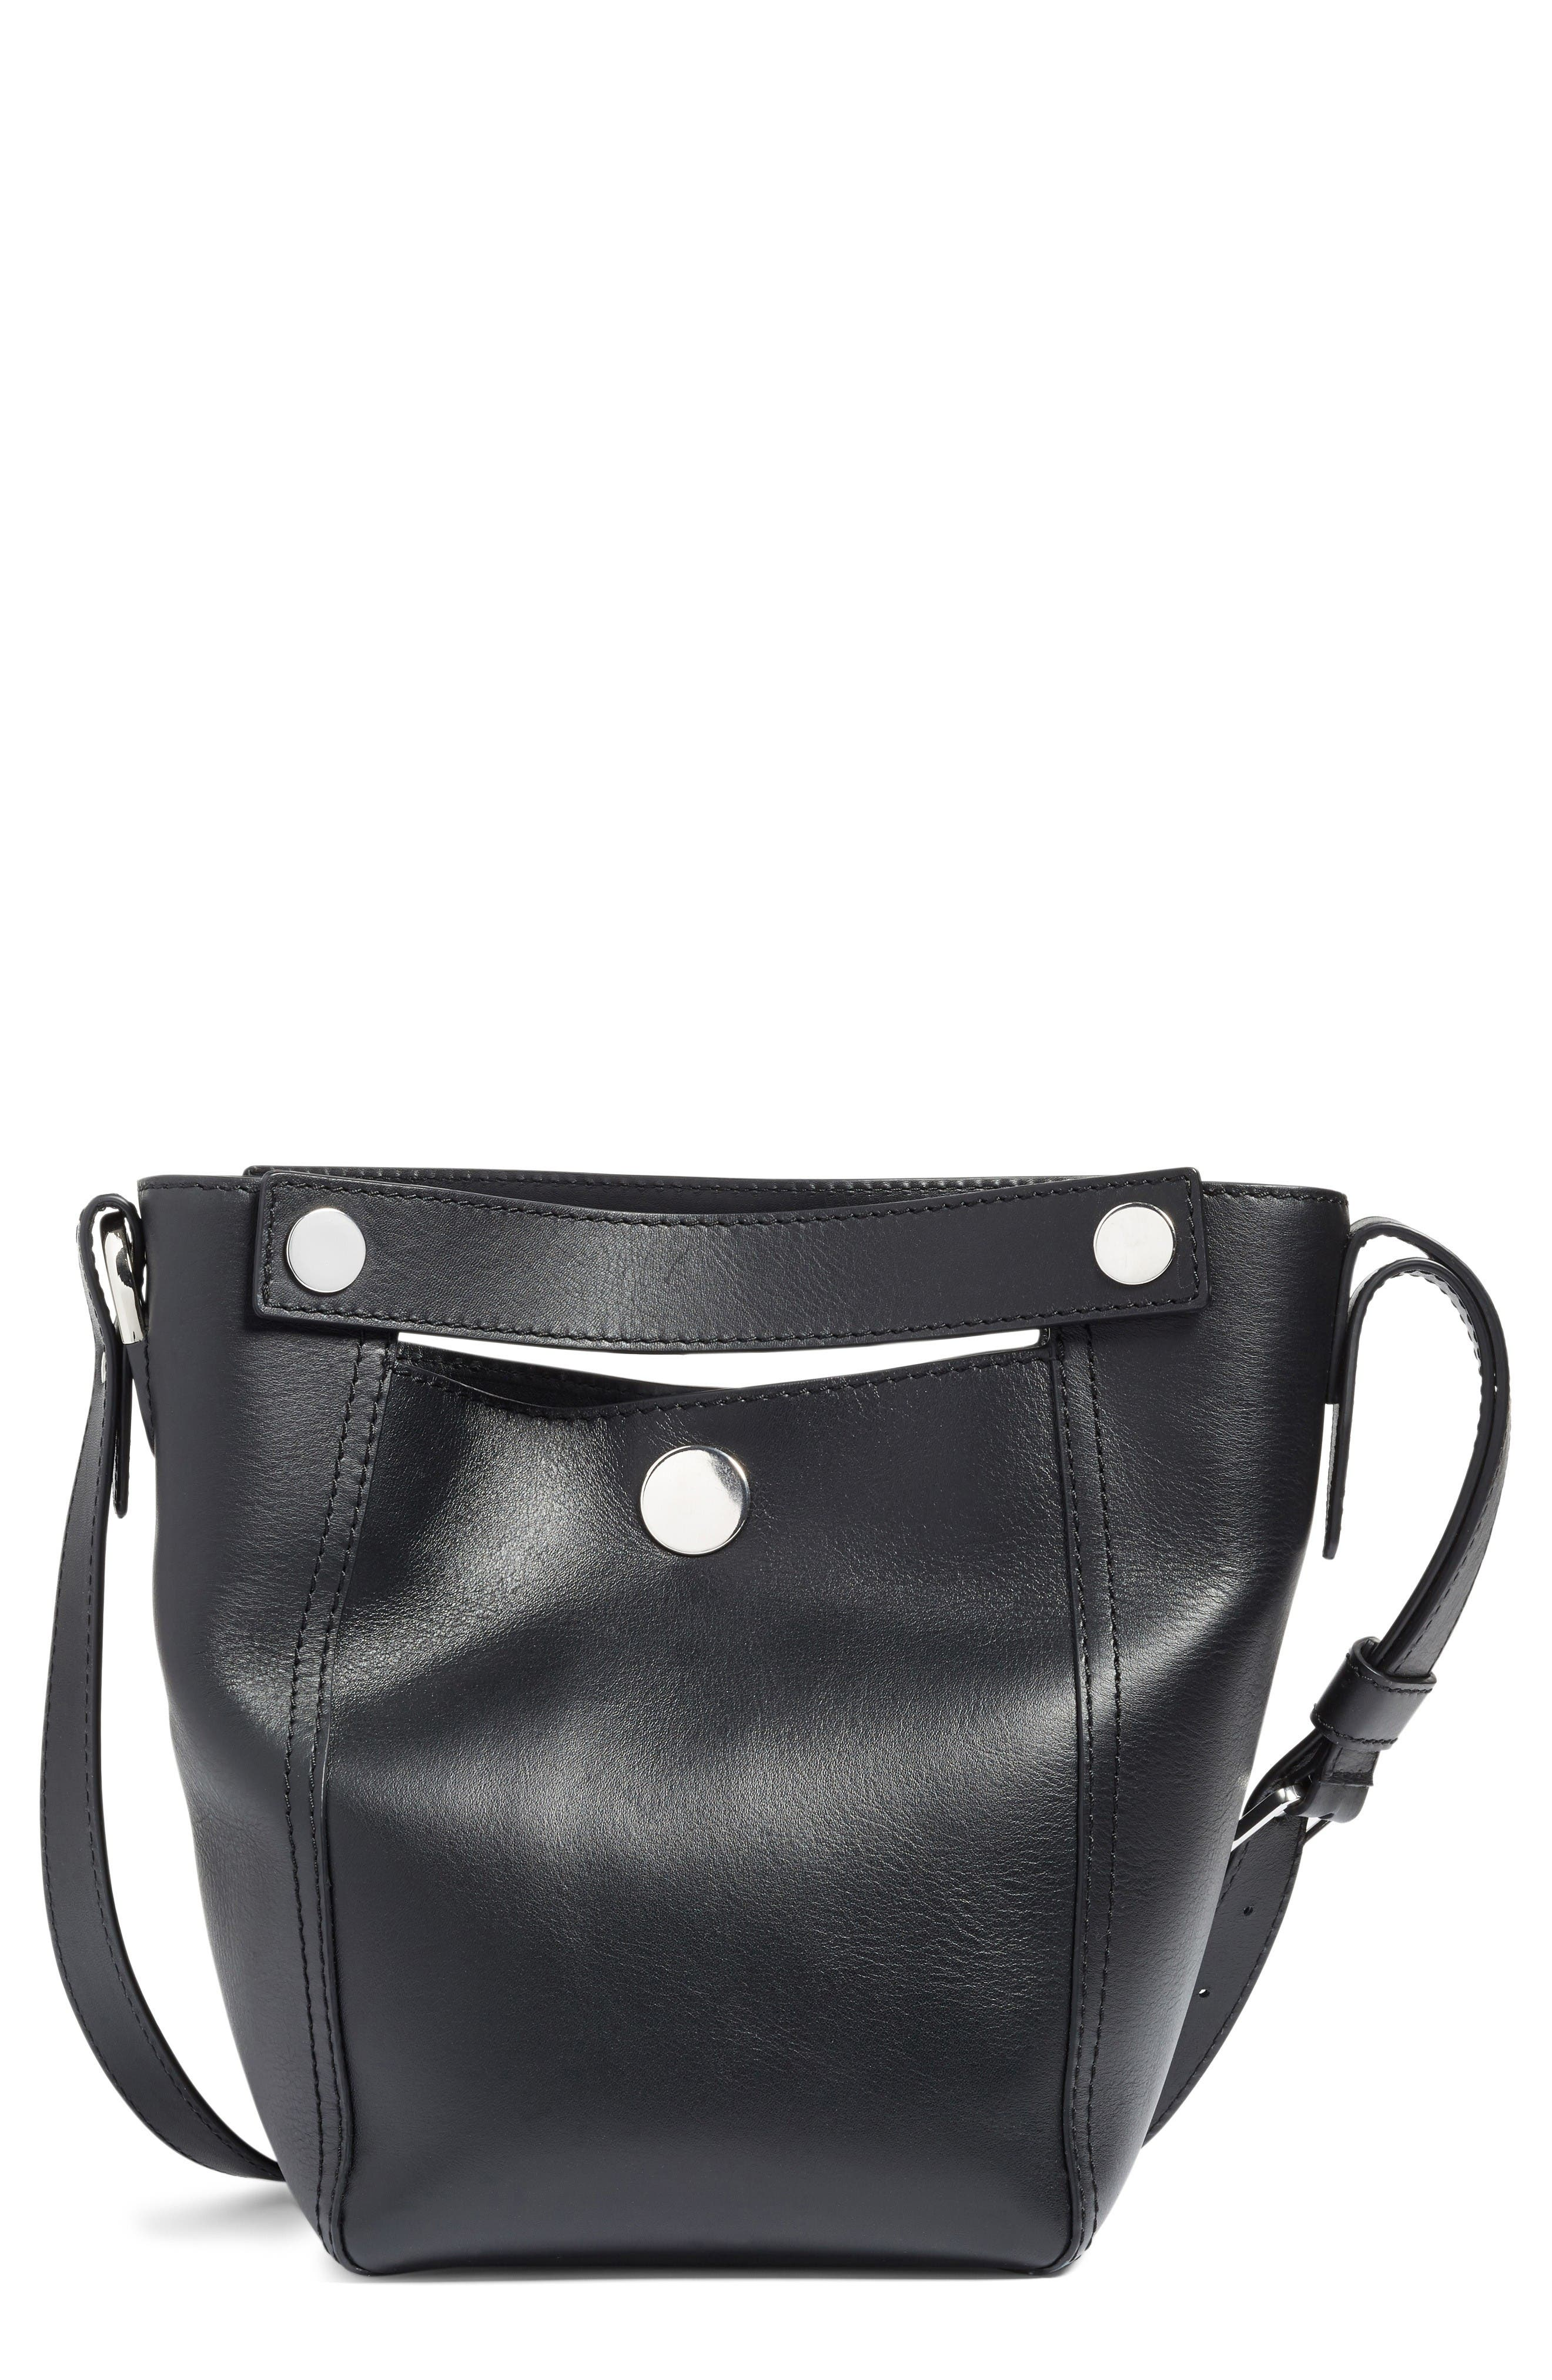 Main Image - 3.1 Phillip Lim Small Dolly Leather Tote